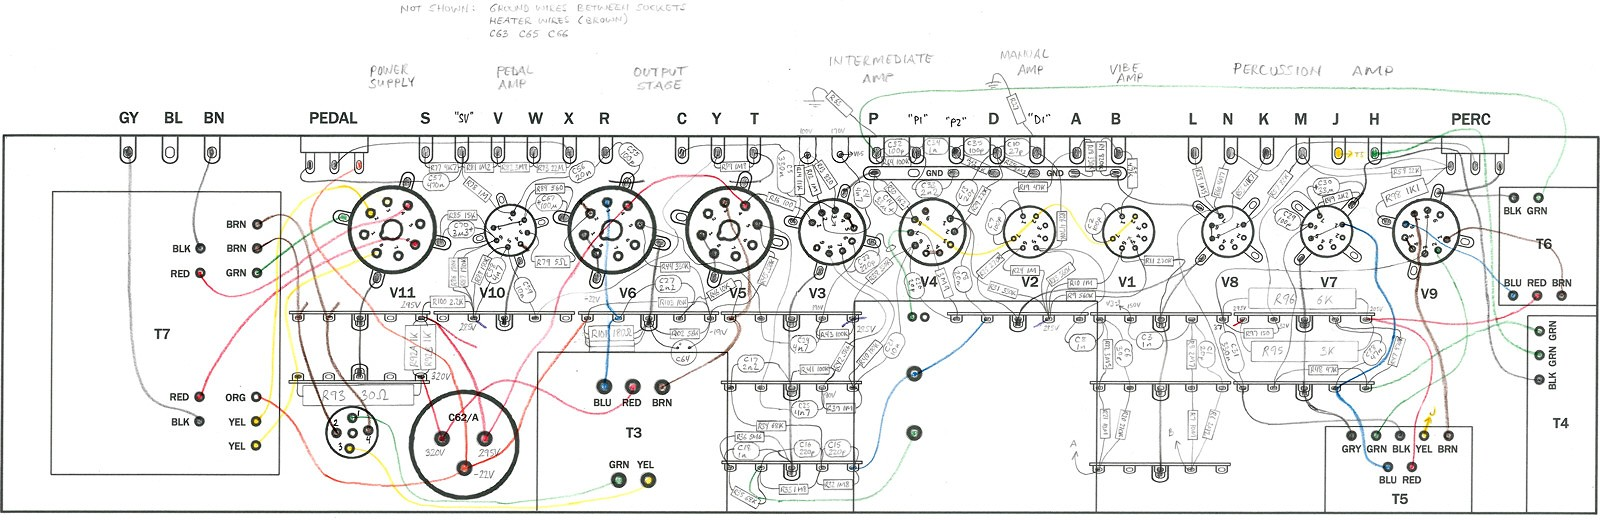 hight resolution of the completed wiring diagram drawn full size